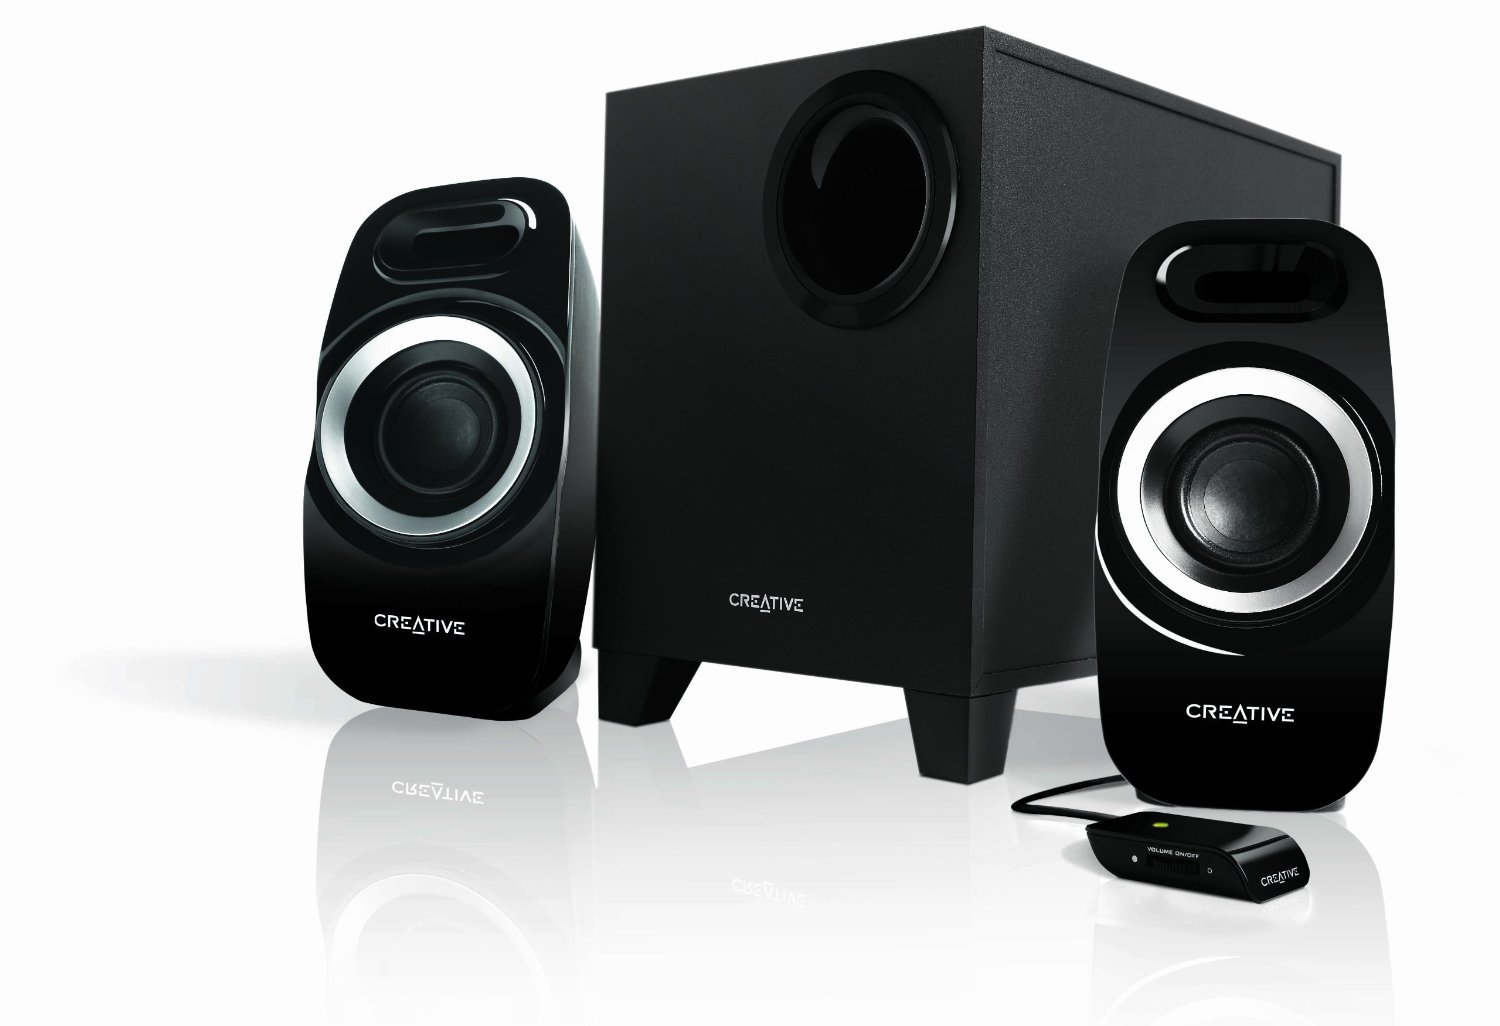 Ηχεία Creative Inspire A250 2.1 Speakers 9Watt RMS